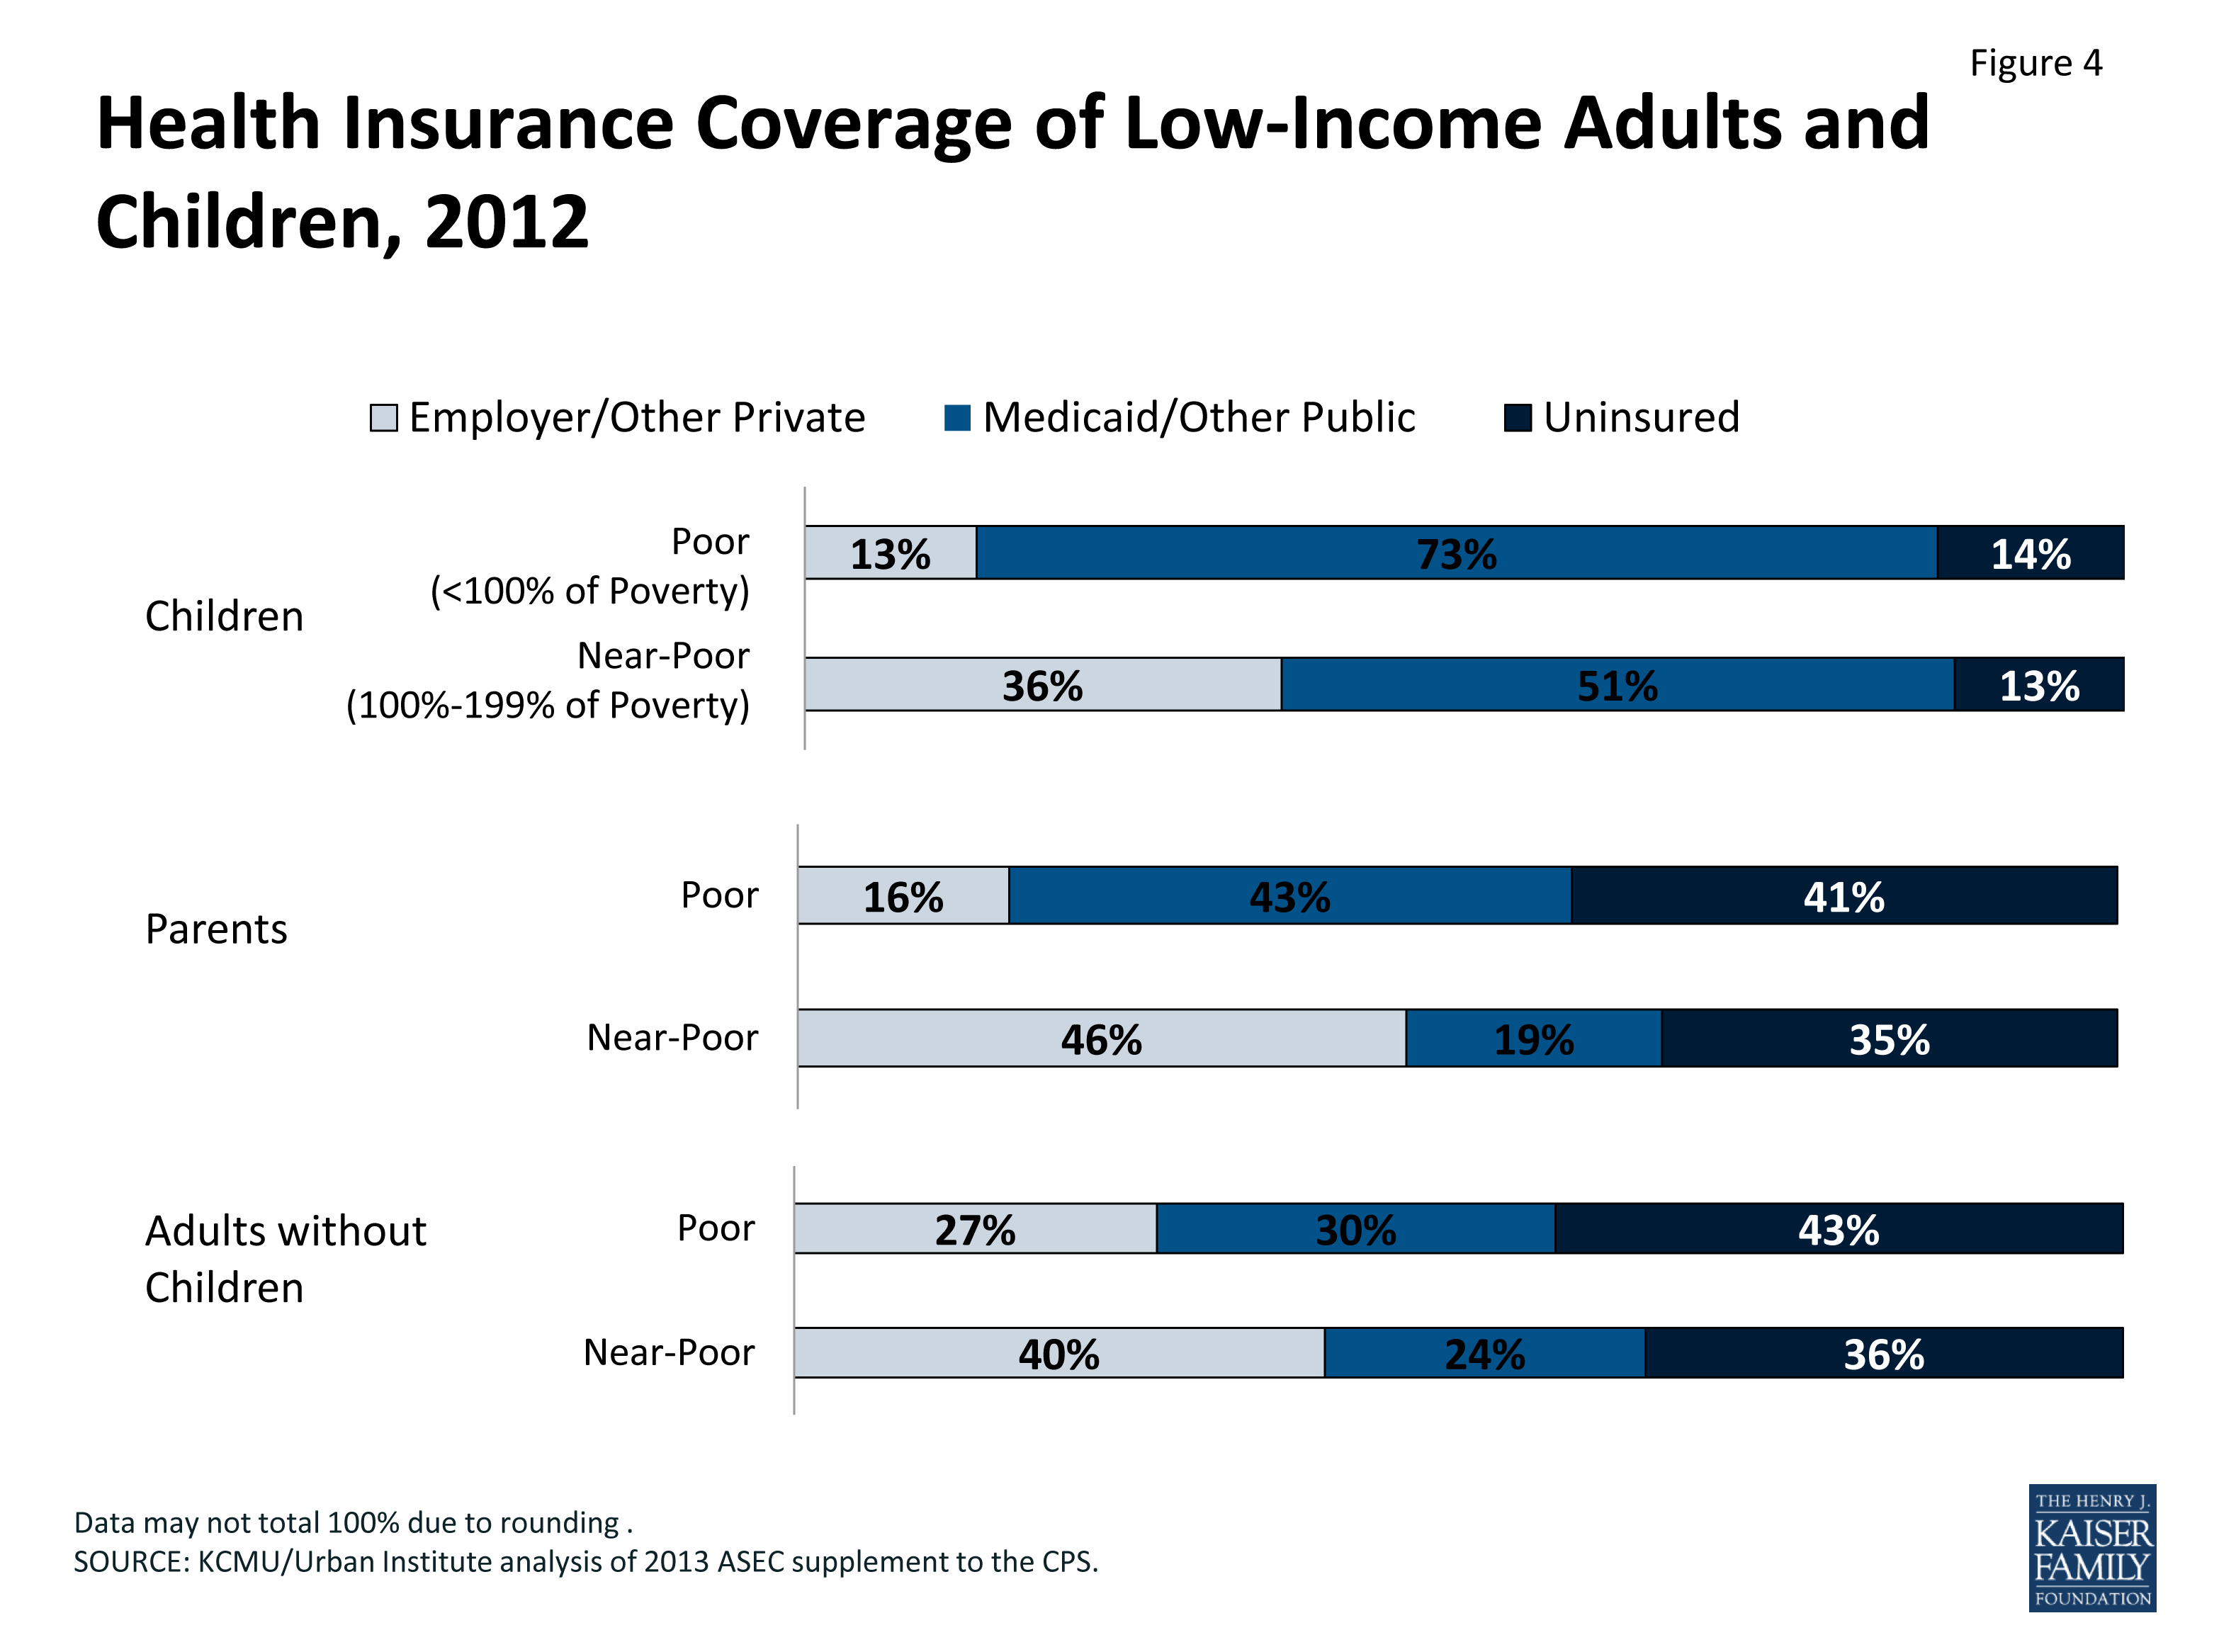 pennsylvania health insurance for low income adults